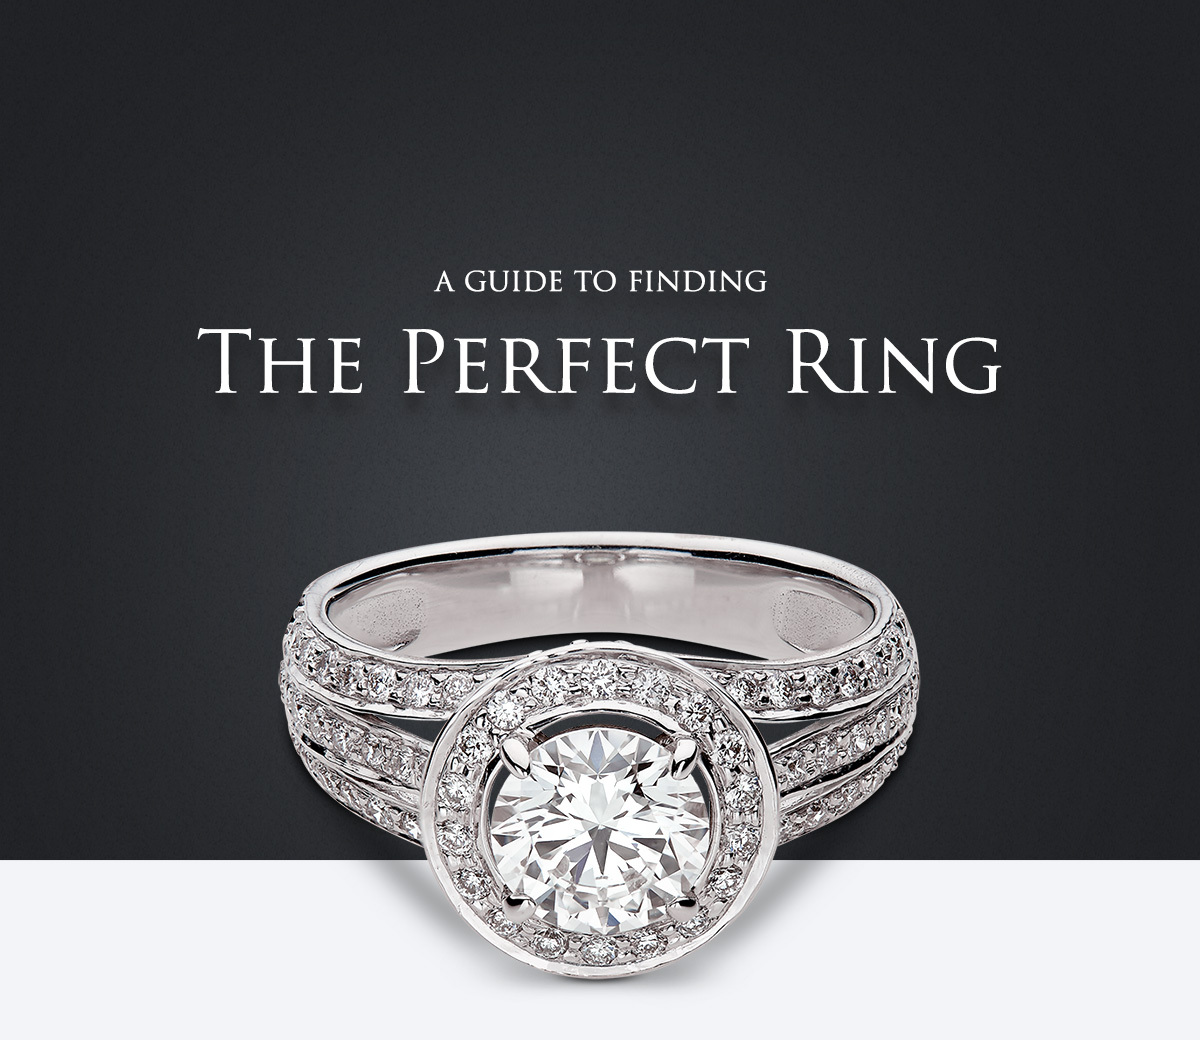 A guide to finding the perfect ring